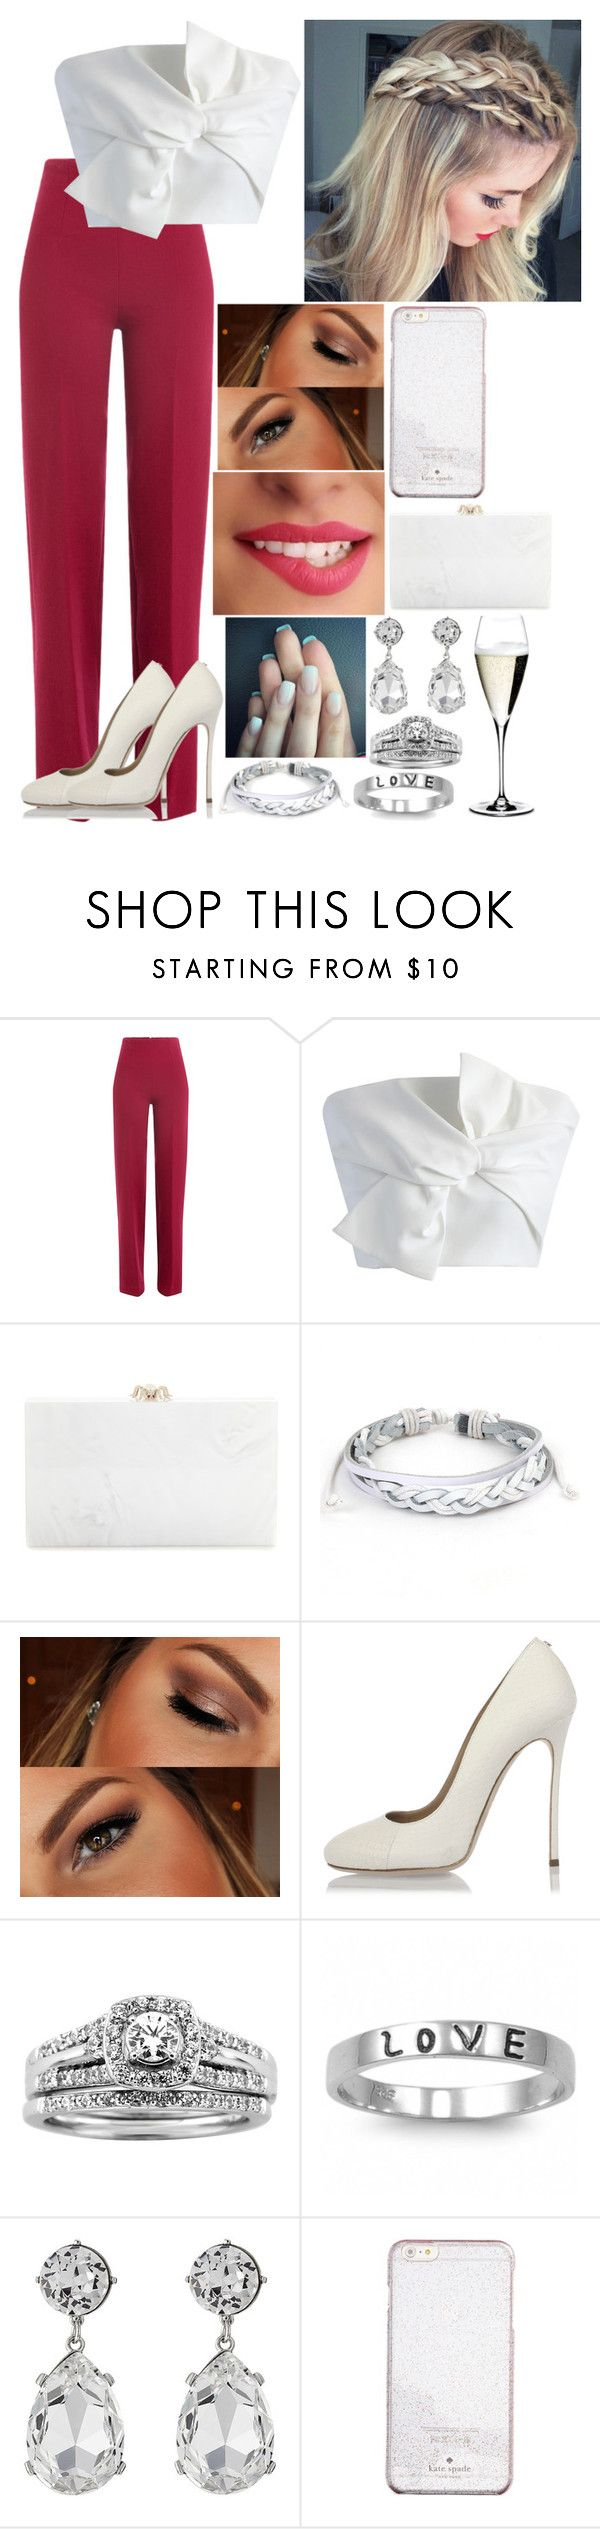 """Untitled #2947"" by nicolerunnels ❤ liked on Polyvore featuring Emilia Wickstead, Chicwish, Charlotte Olympia, West Coast Jewelry, Urban Decay, Dsquared2, A.Jaffe, Fantasy Jewelry Box, Kenneth Jay Lane and Kate Spade"